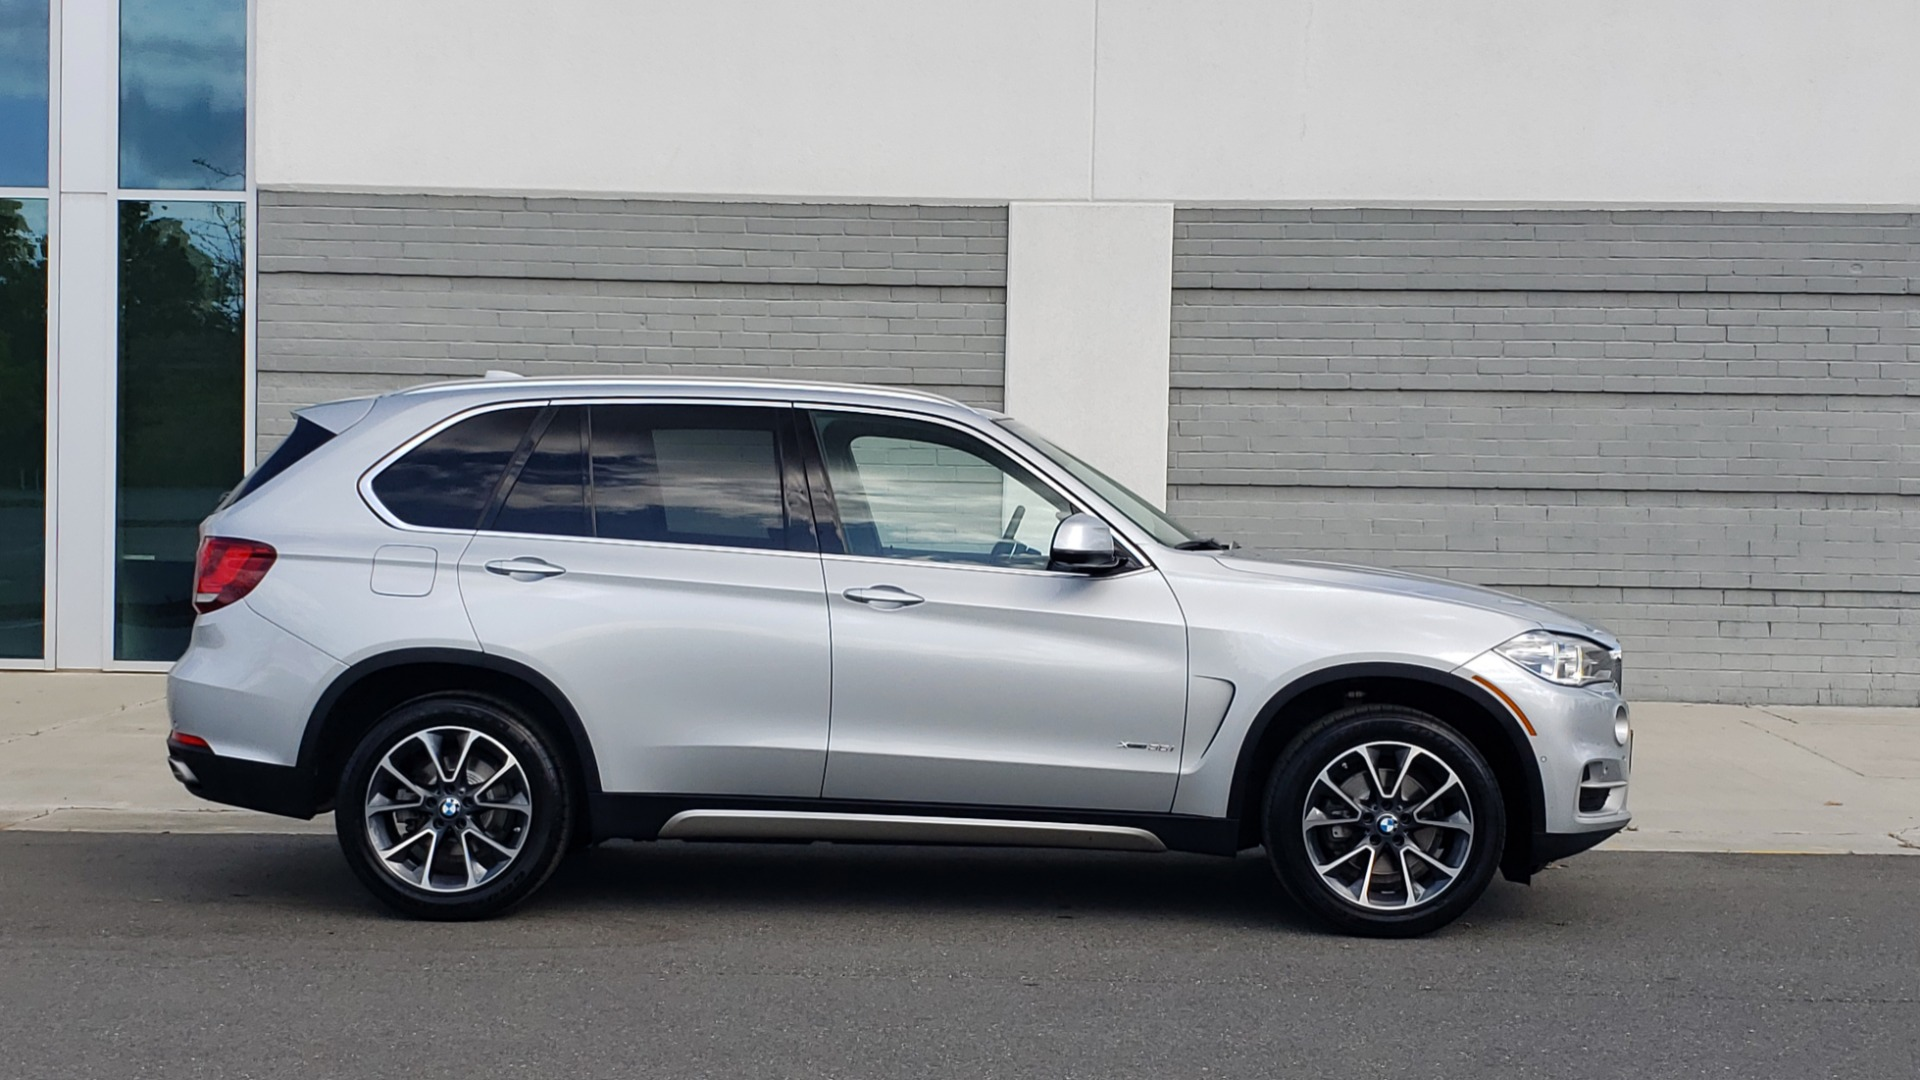 Used 2018 BMW X5 XDRIVE35I PREMIUM / NAV / PANO-ROOF / DRIVER ASST / REARVIEW for sale Sold at Formula Imports in Charlotte NC 28227 9